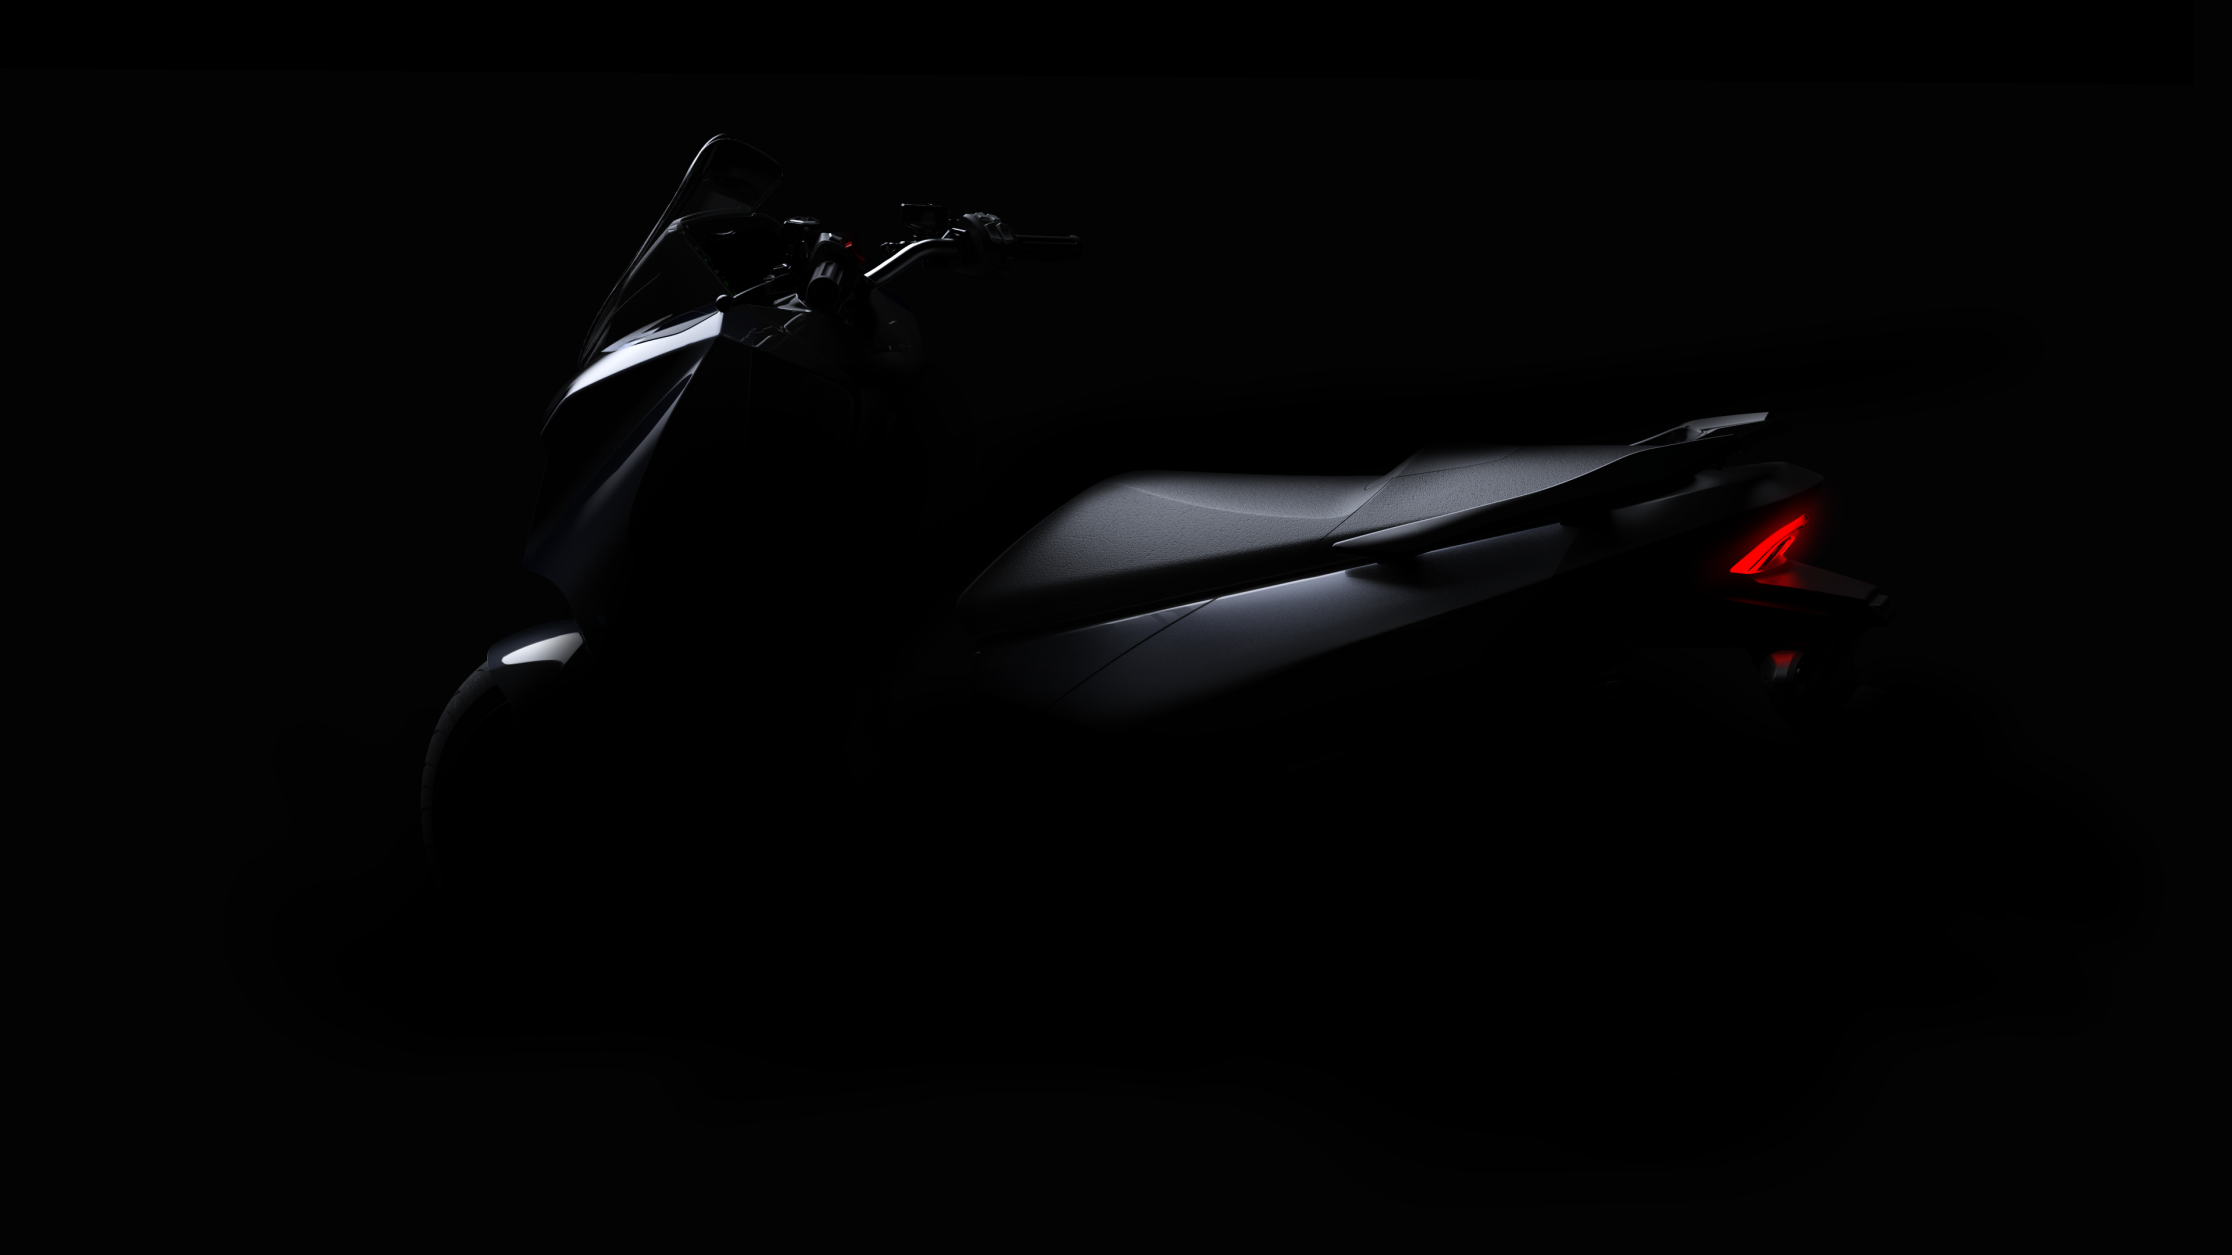 ION Mobility completes US$6.8 million Seed Round ahead of Smart Electric Motorbike launch